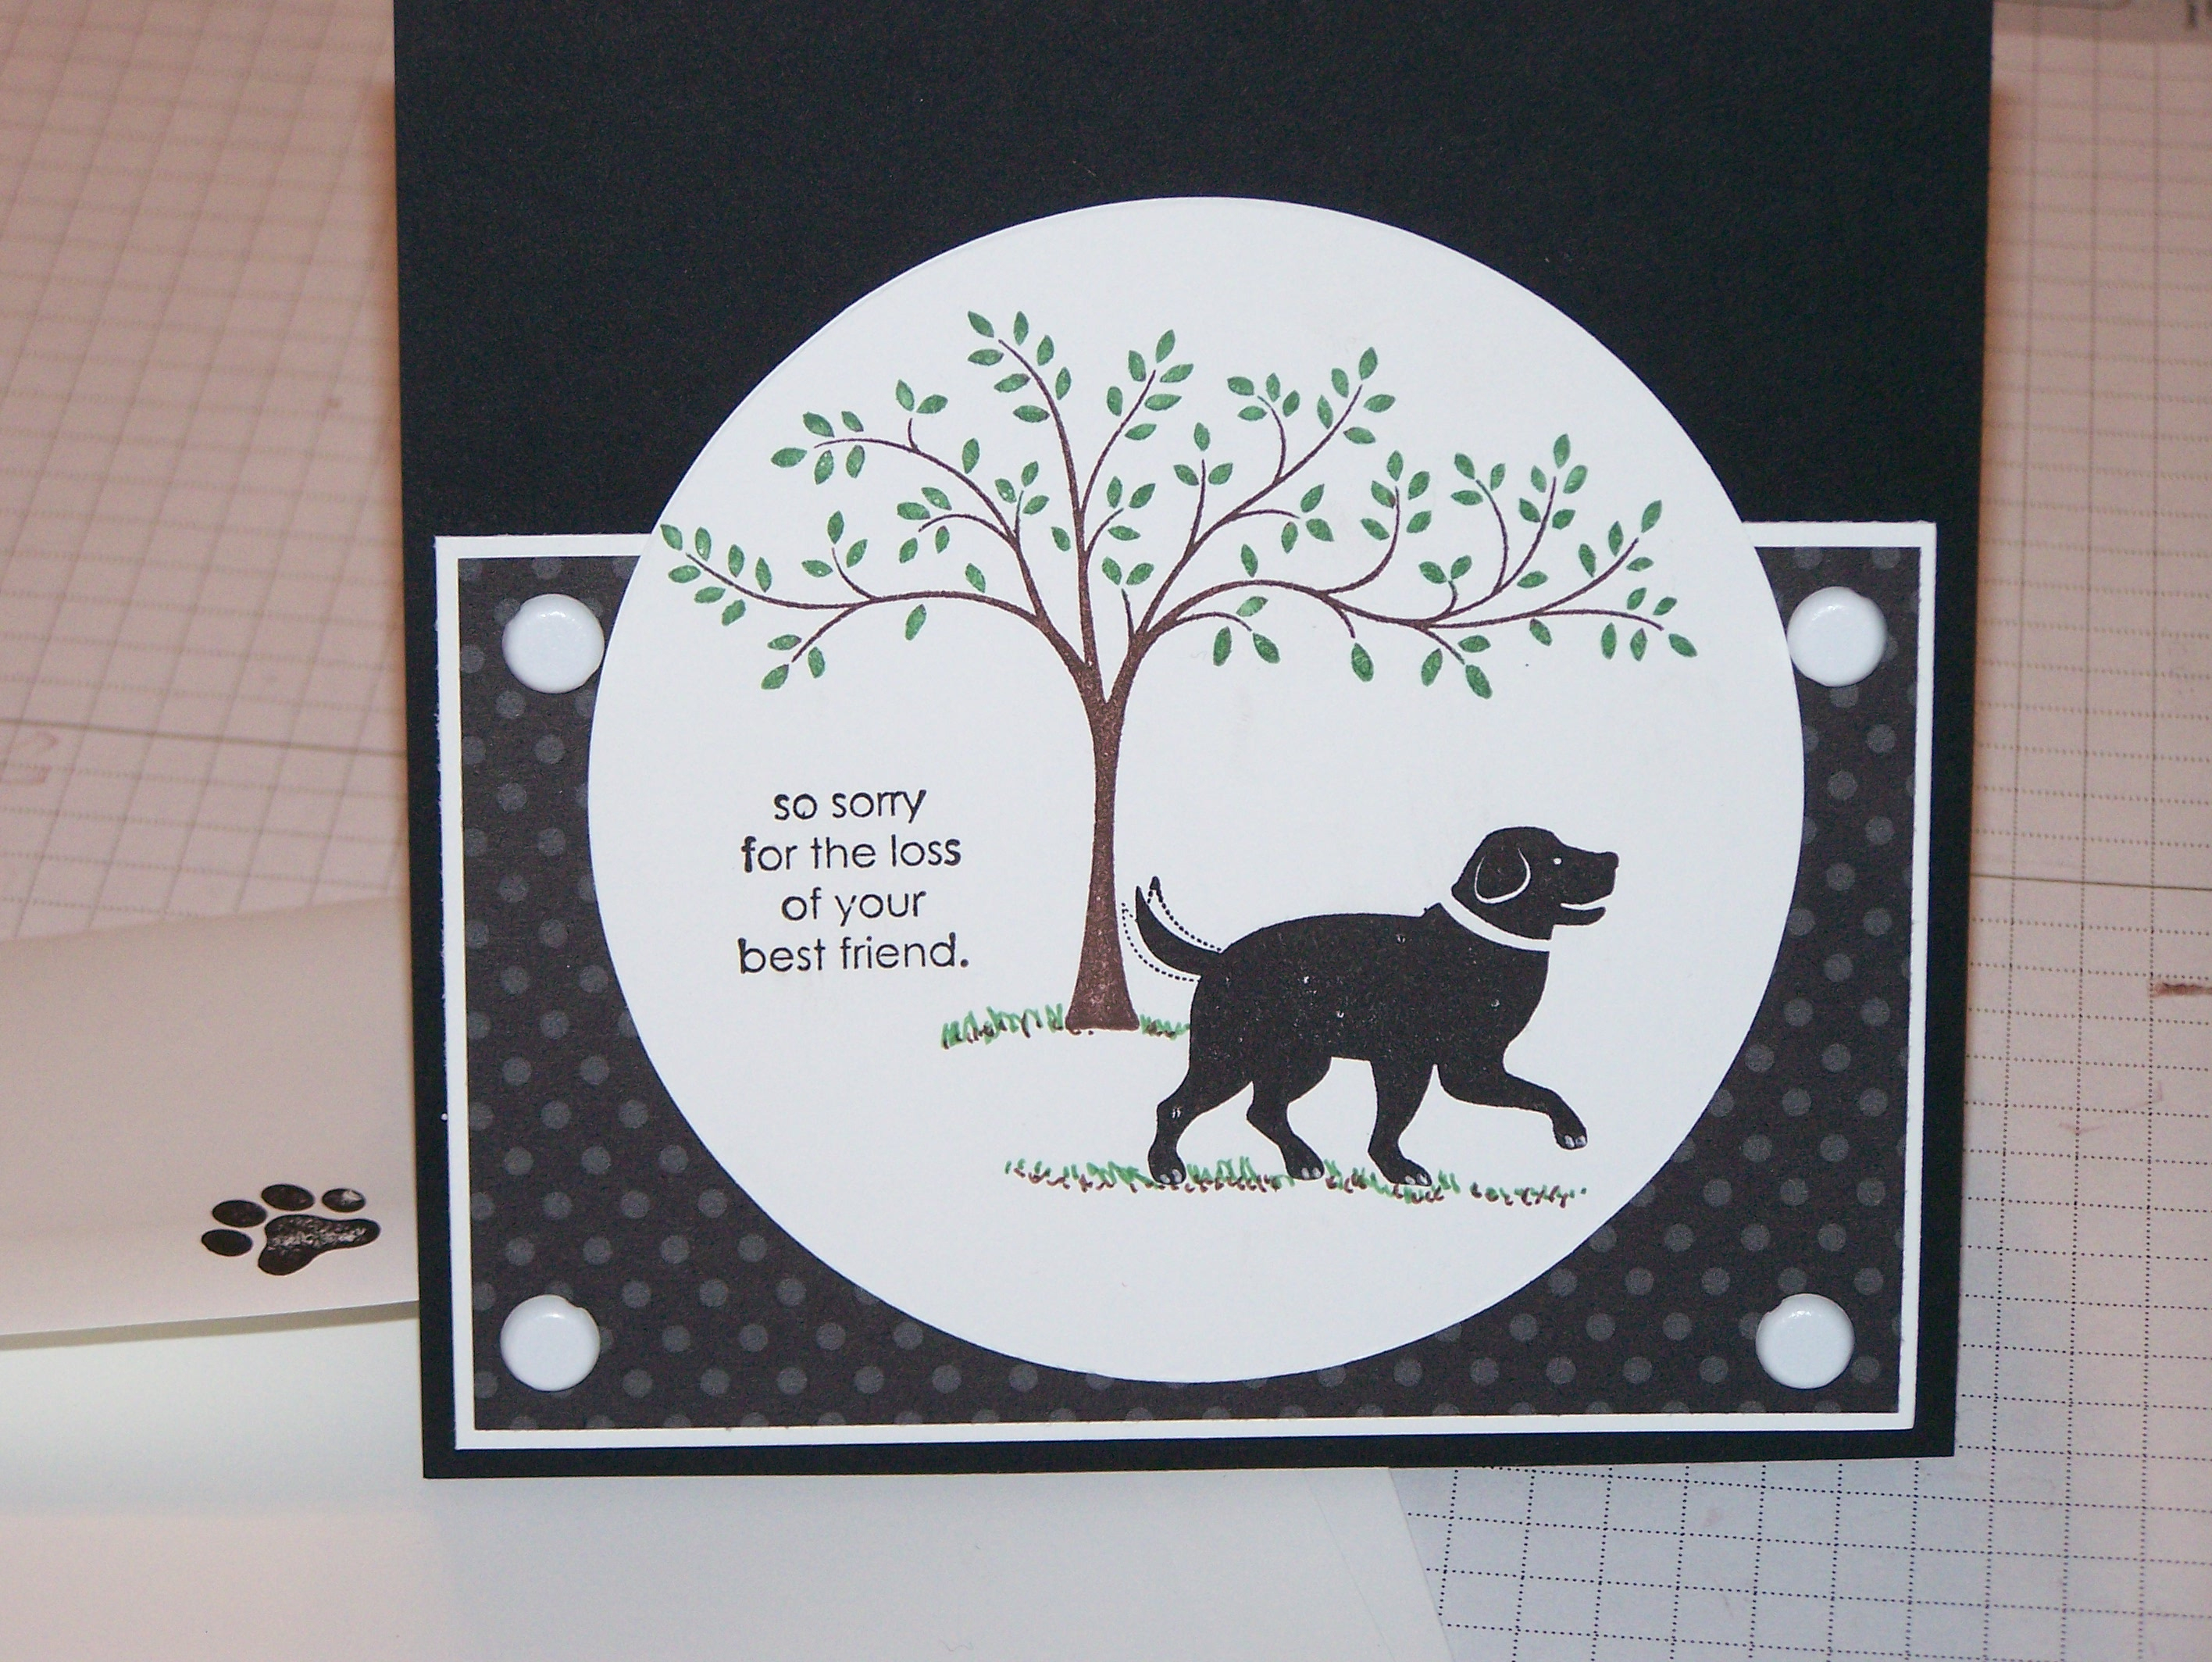 98+ Tips On Writing A Pet Loss Condolence Note Healing The Heart - Free Printable Sympathy Card For Loss Of Pet